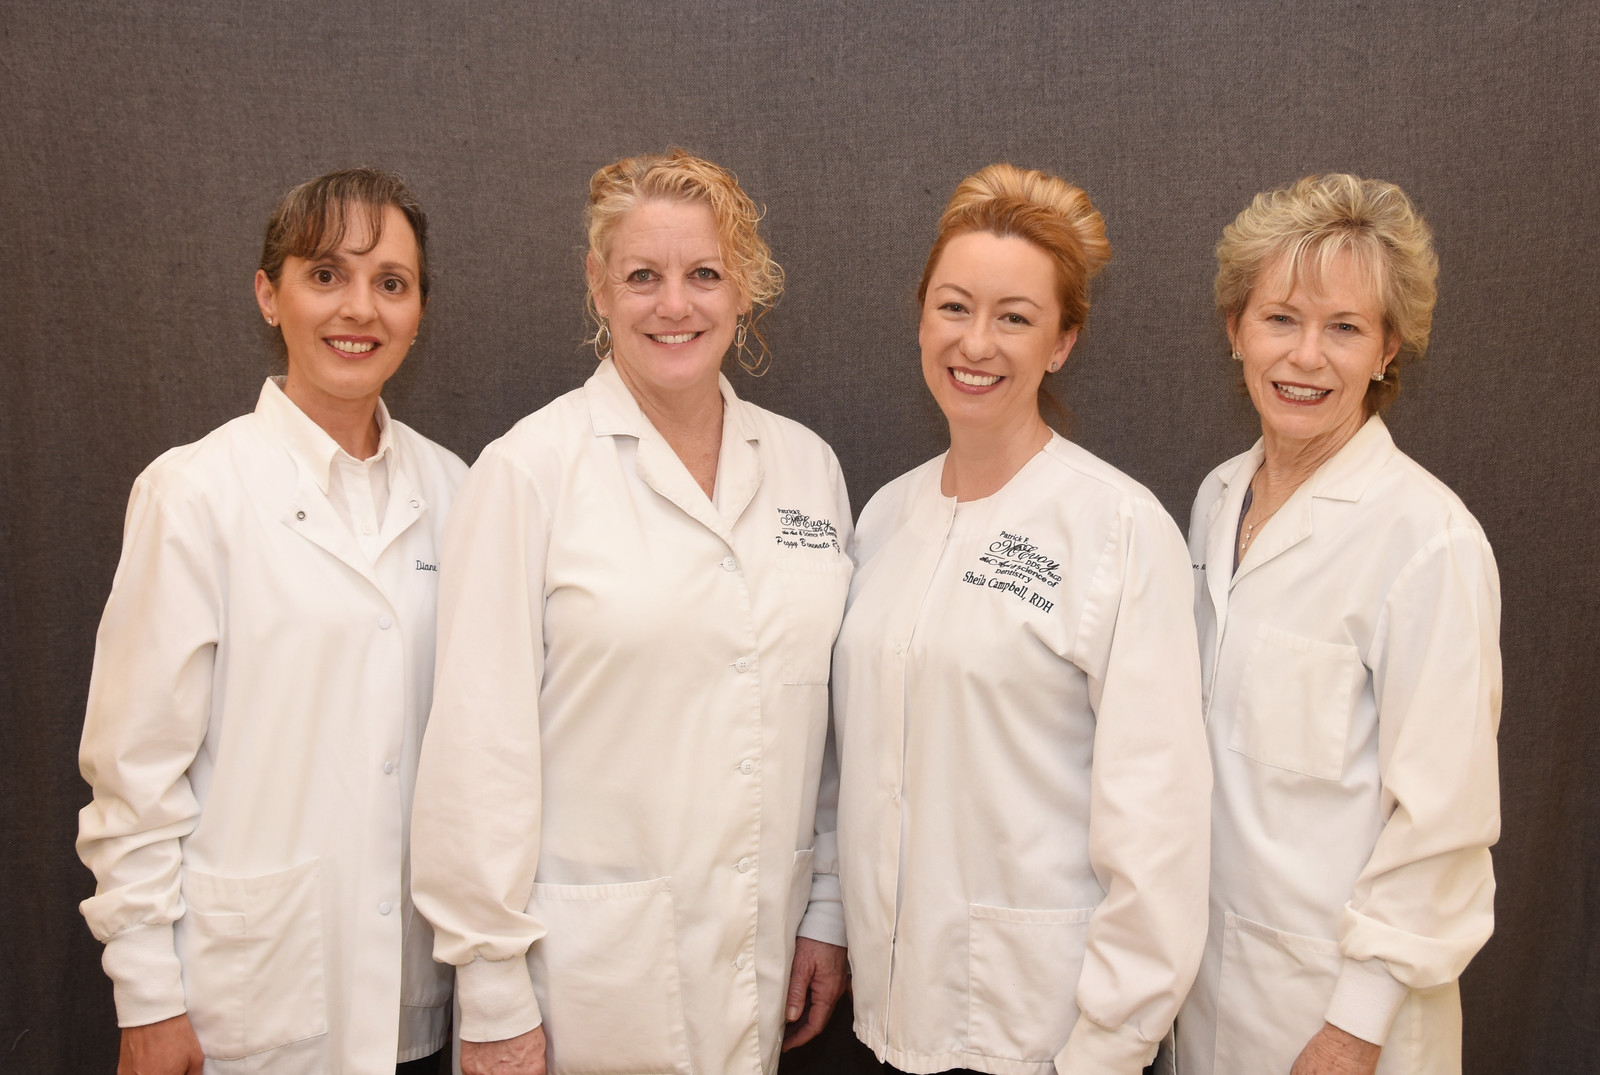 Dental team at Dental Arts of Mountain View